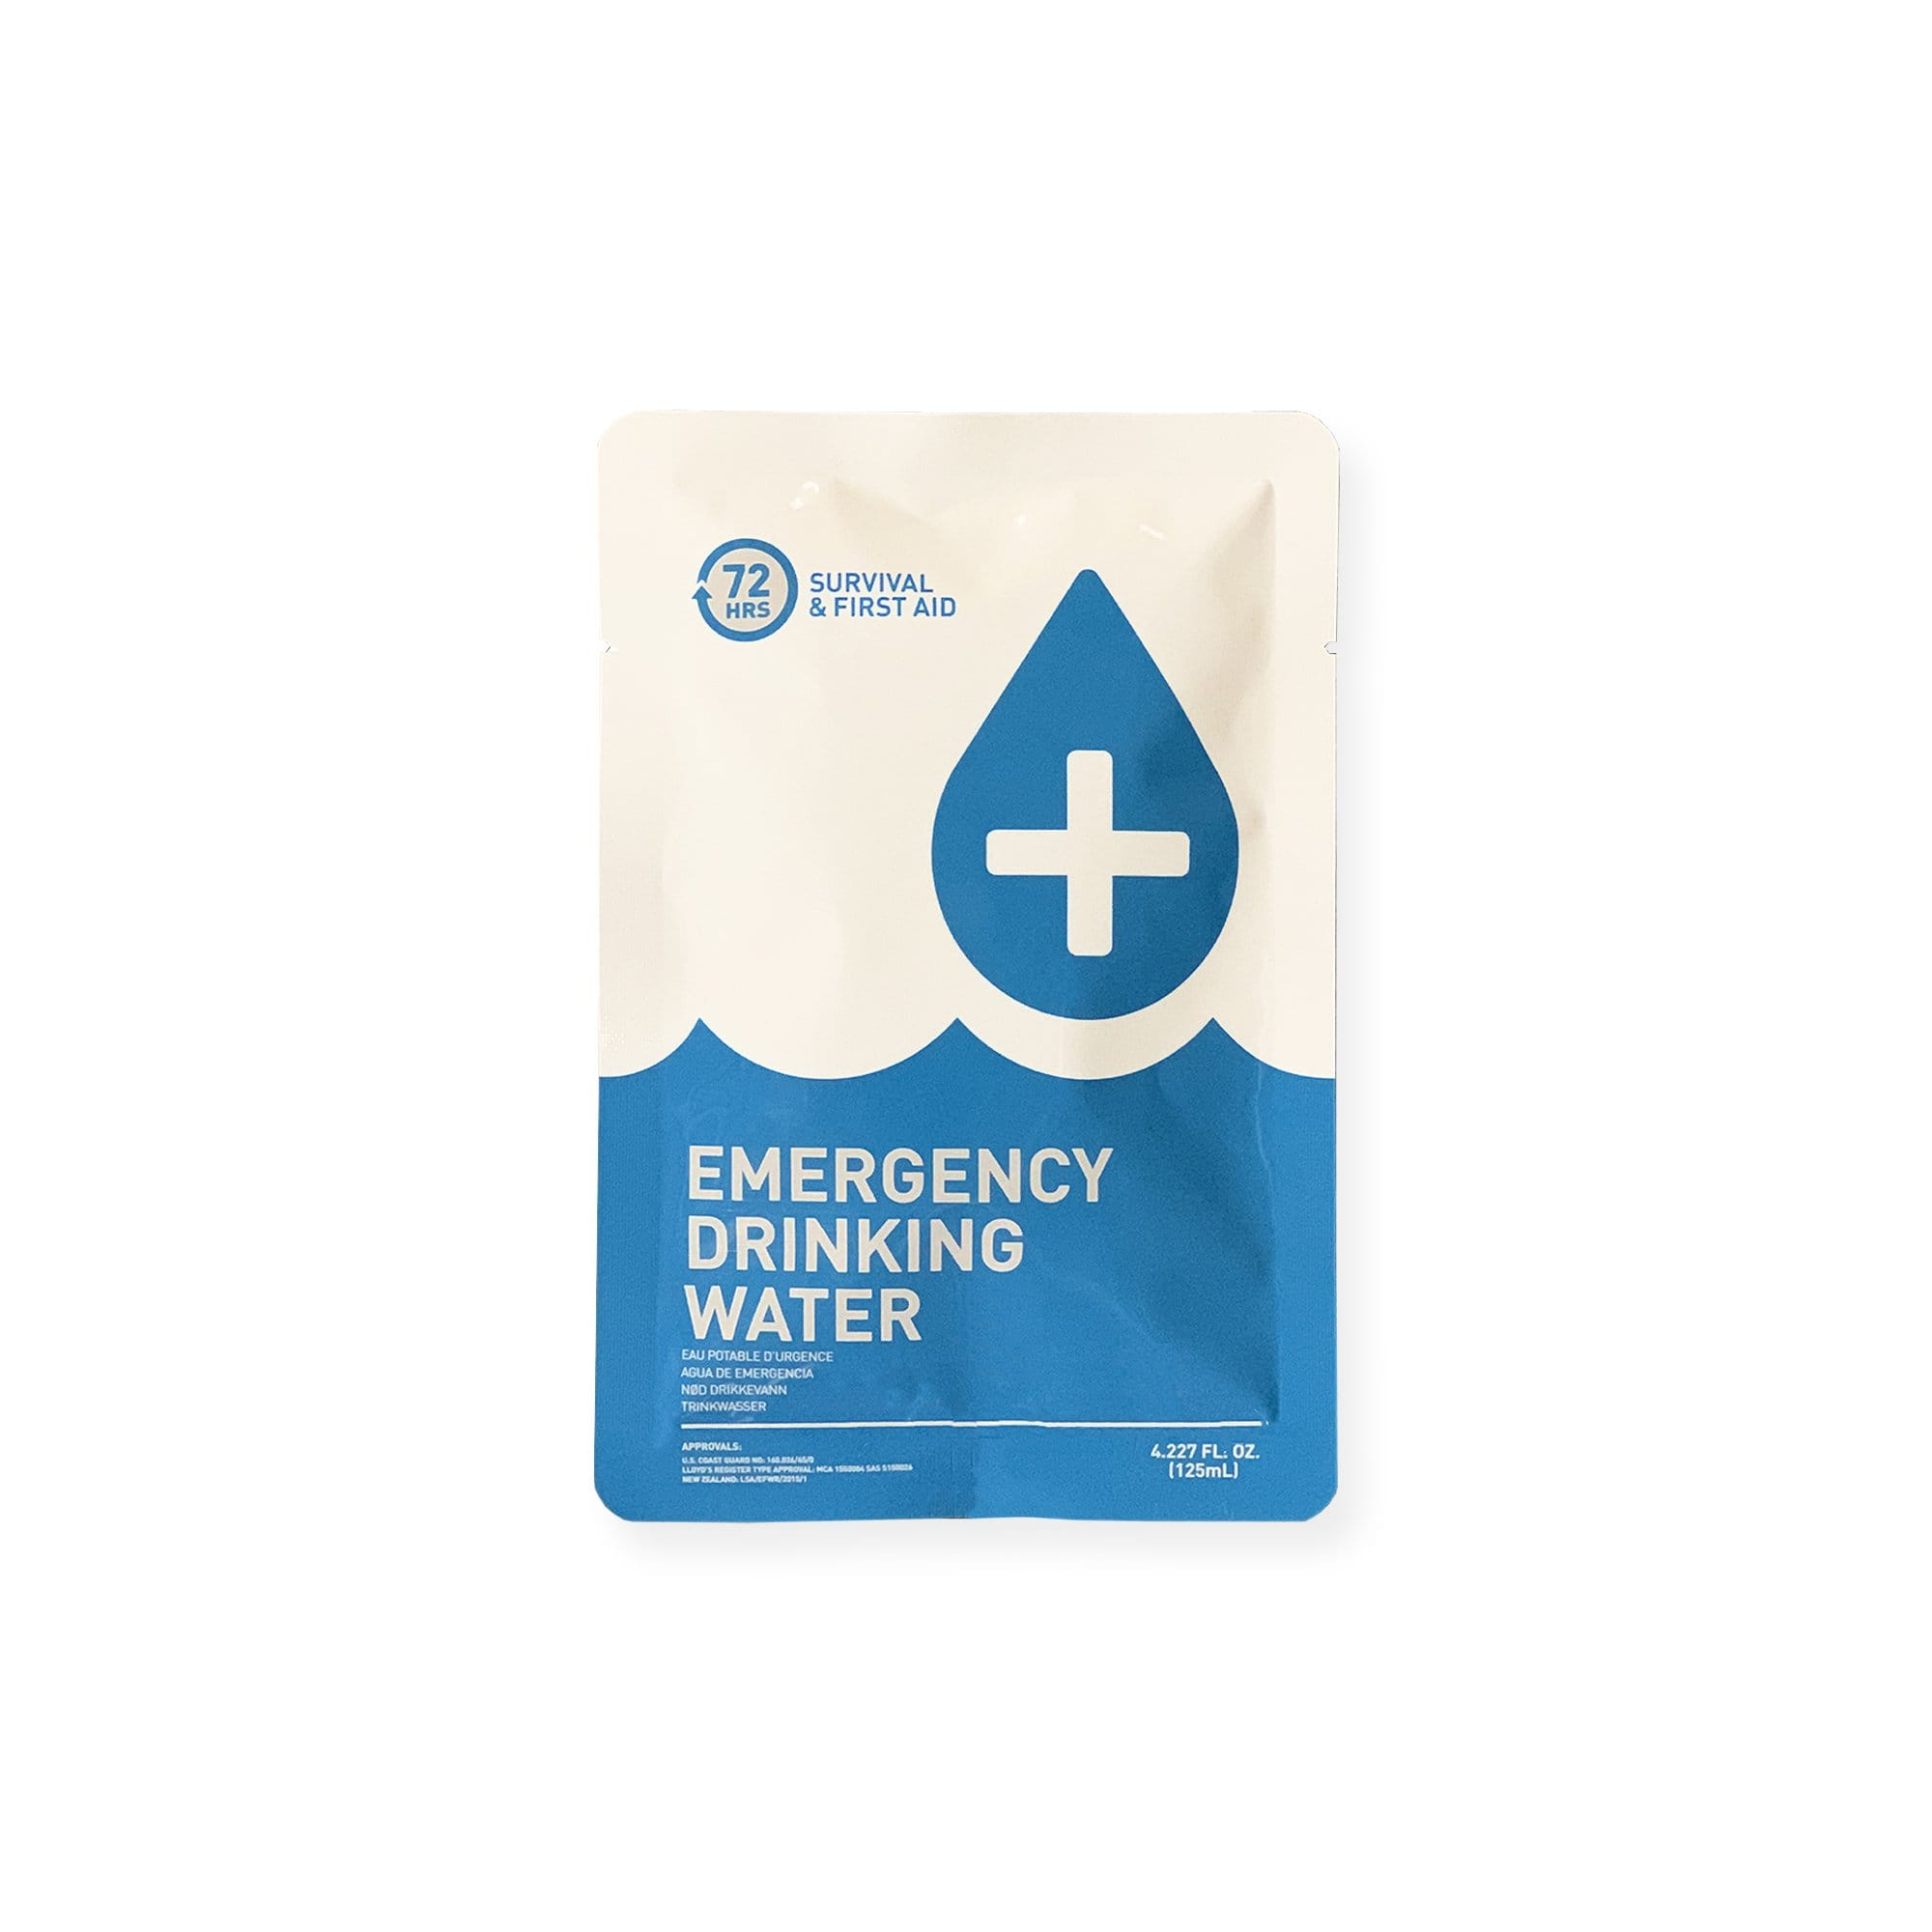 72HOURS Emergency Drinking Water 125ml